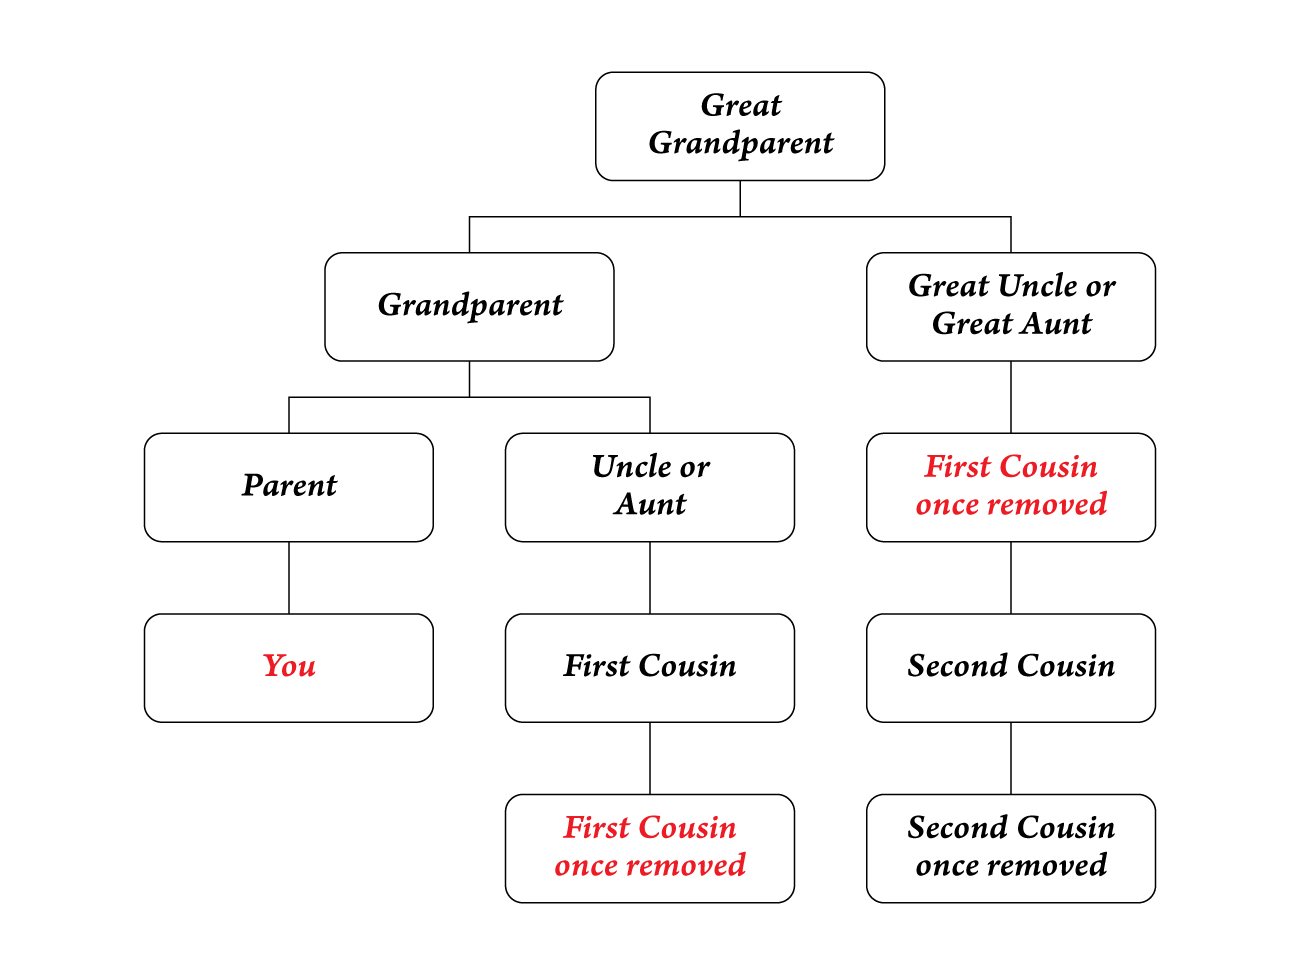 first-cousin-once-removed